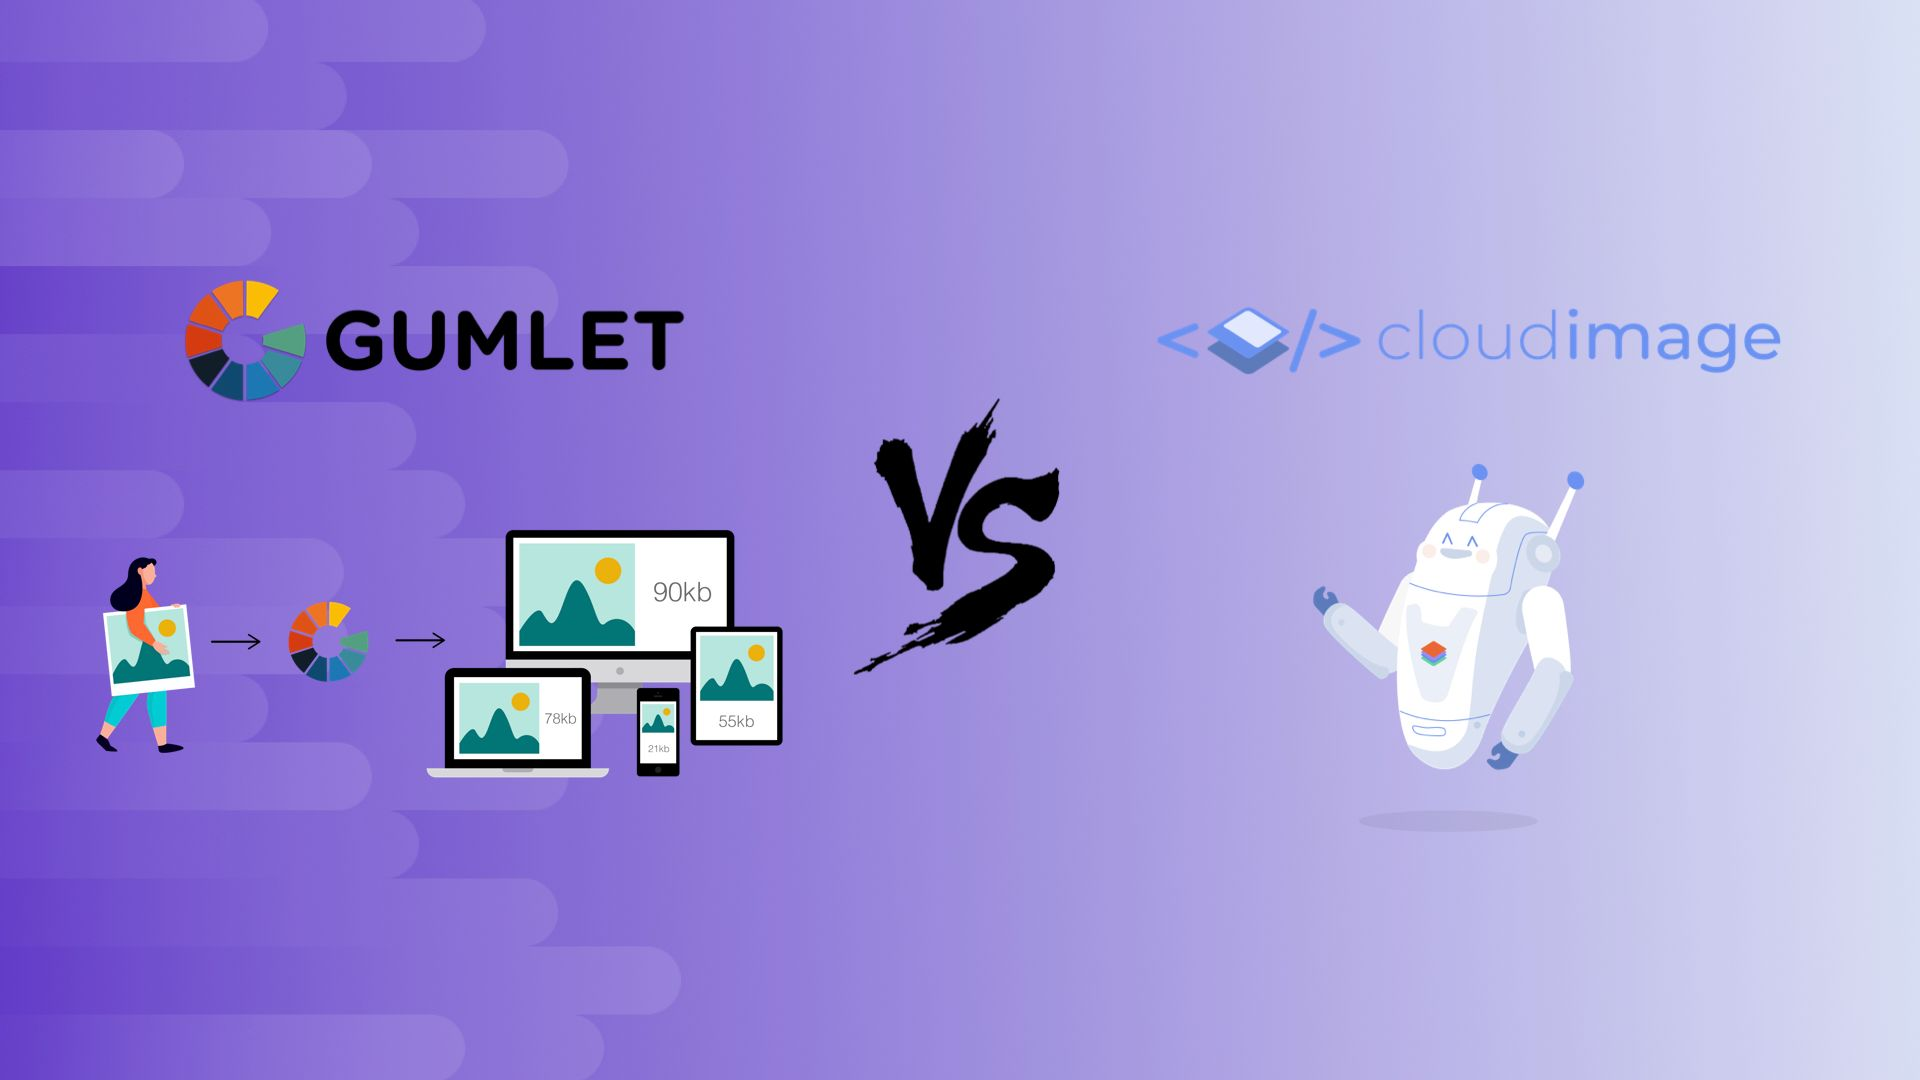 Gumlet vs Cloudimage - Which image optimisation LTD should you choose?